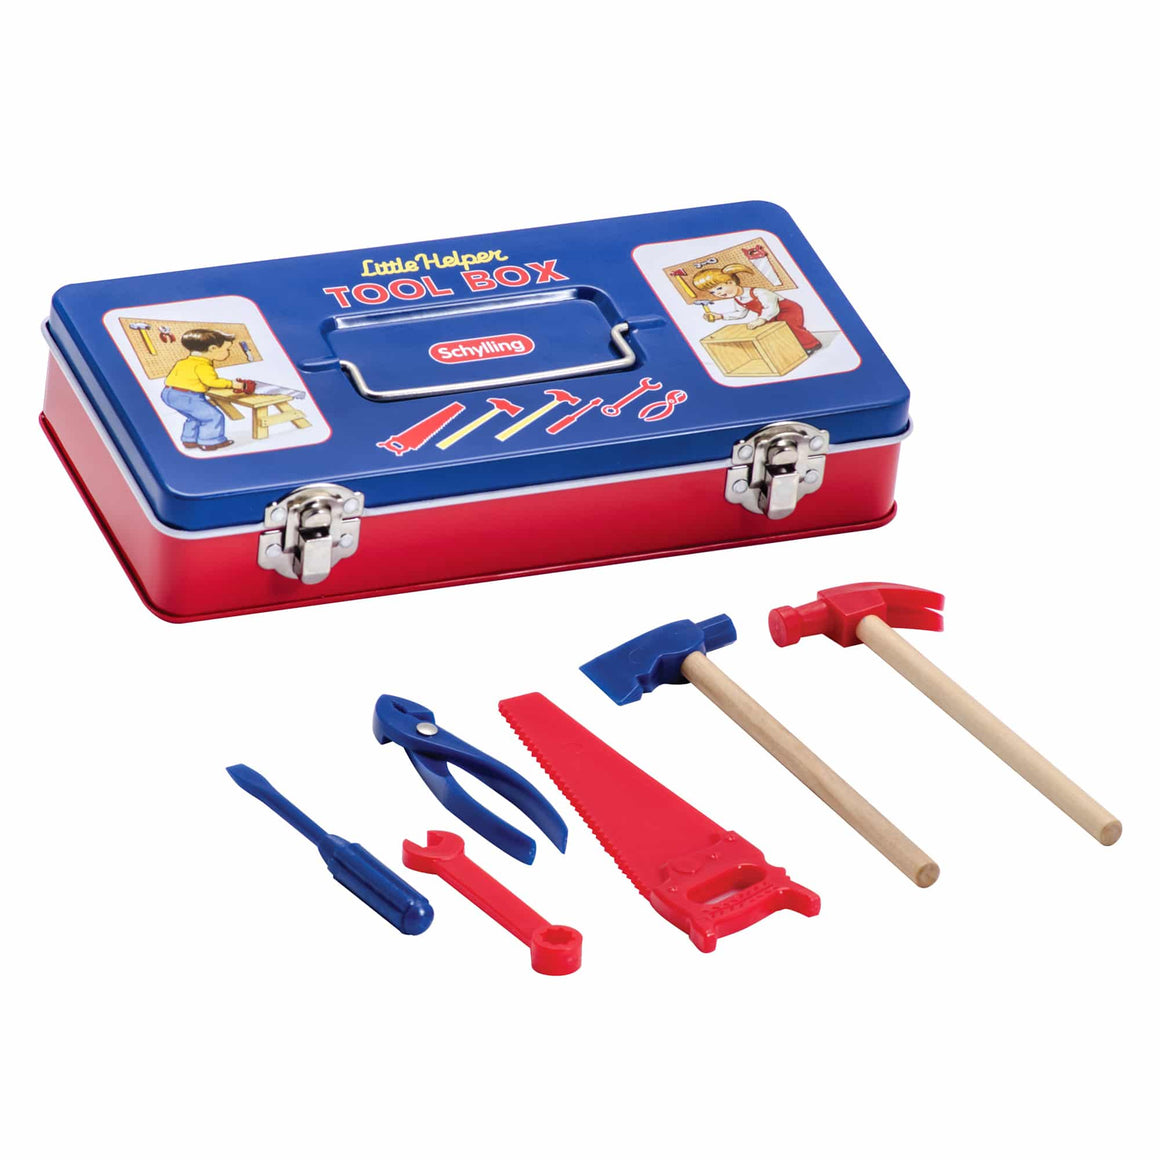 Toy | Tin Tool Box With Tools